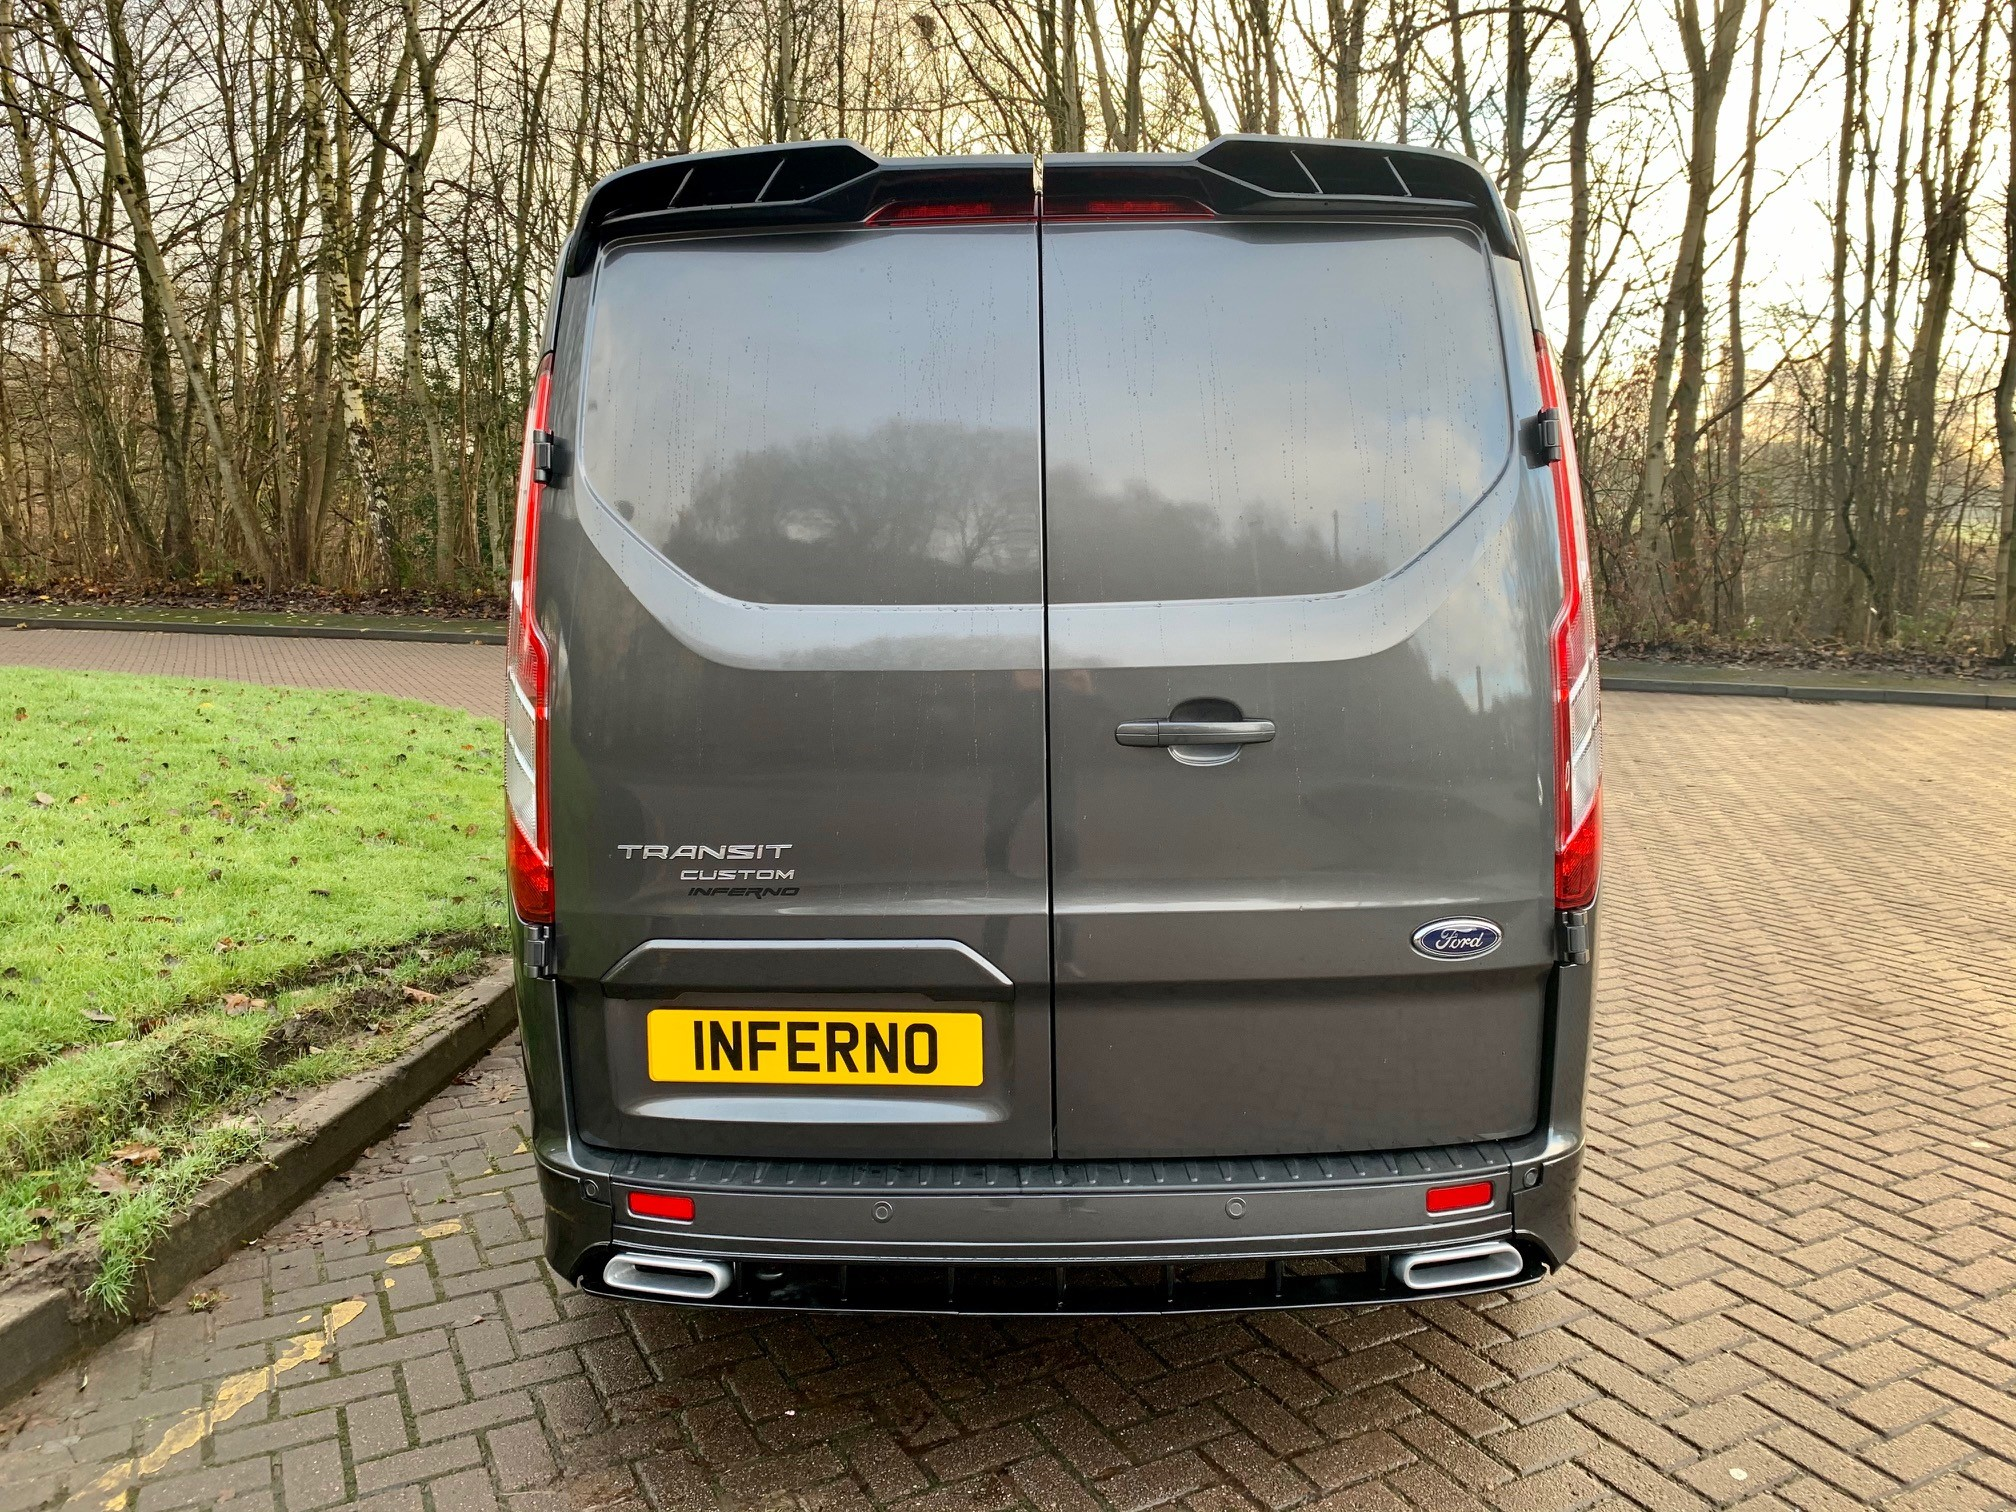 004.jpg - 300 L1 DIESEL FWD 2.0 EcoBlue 170ps Low Roof Limited Van Auto Inferno-X